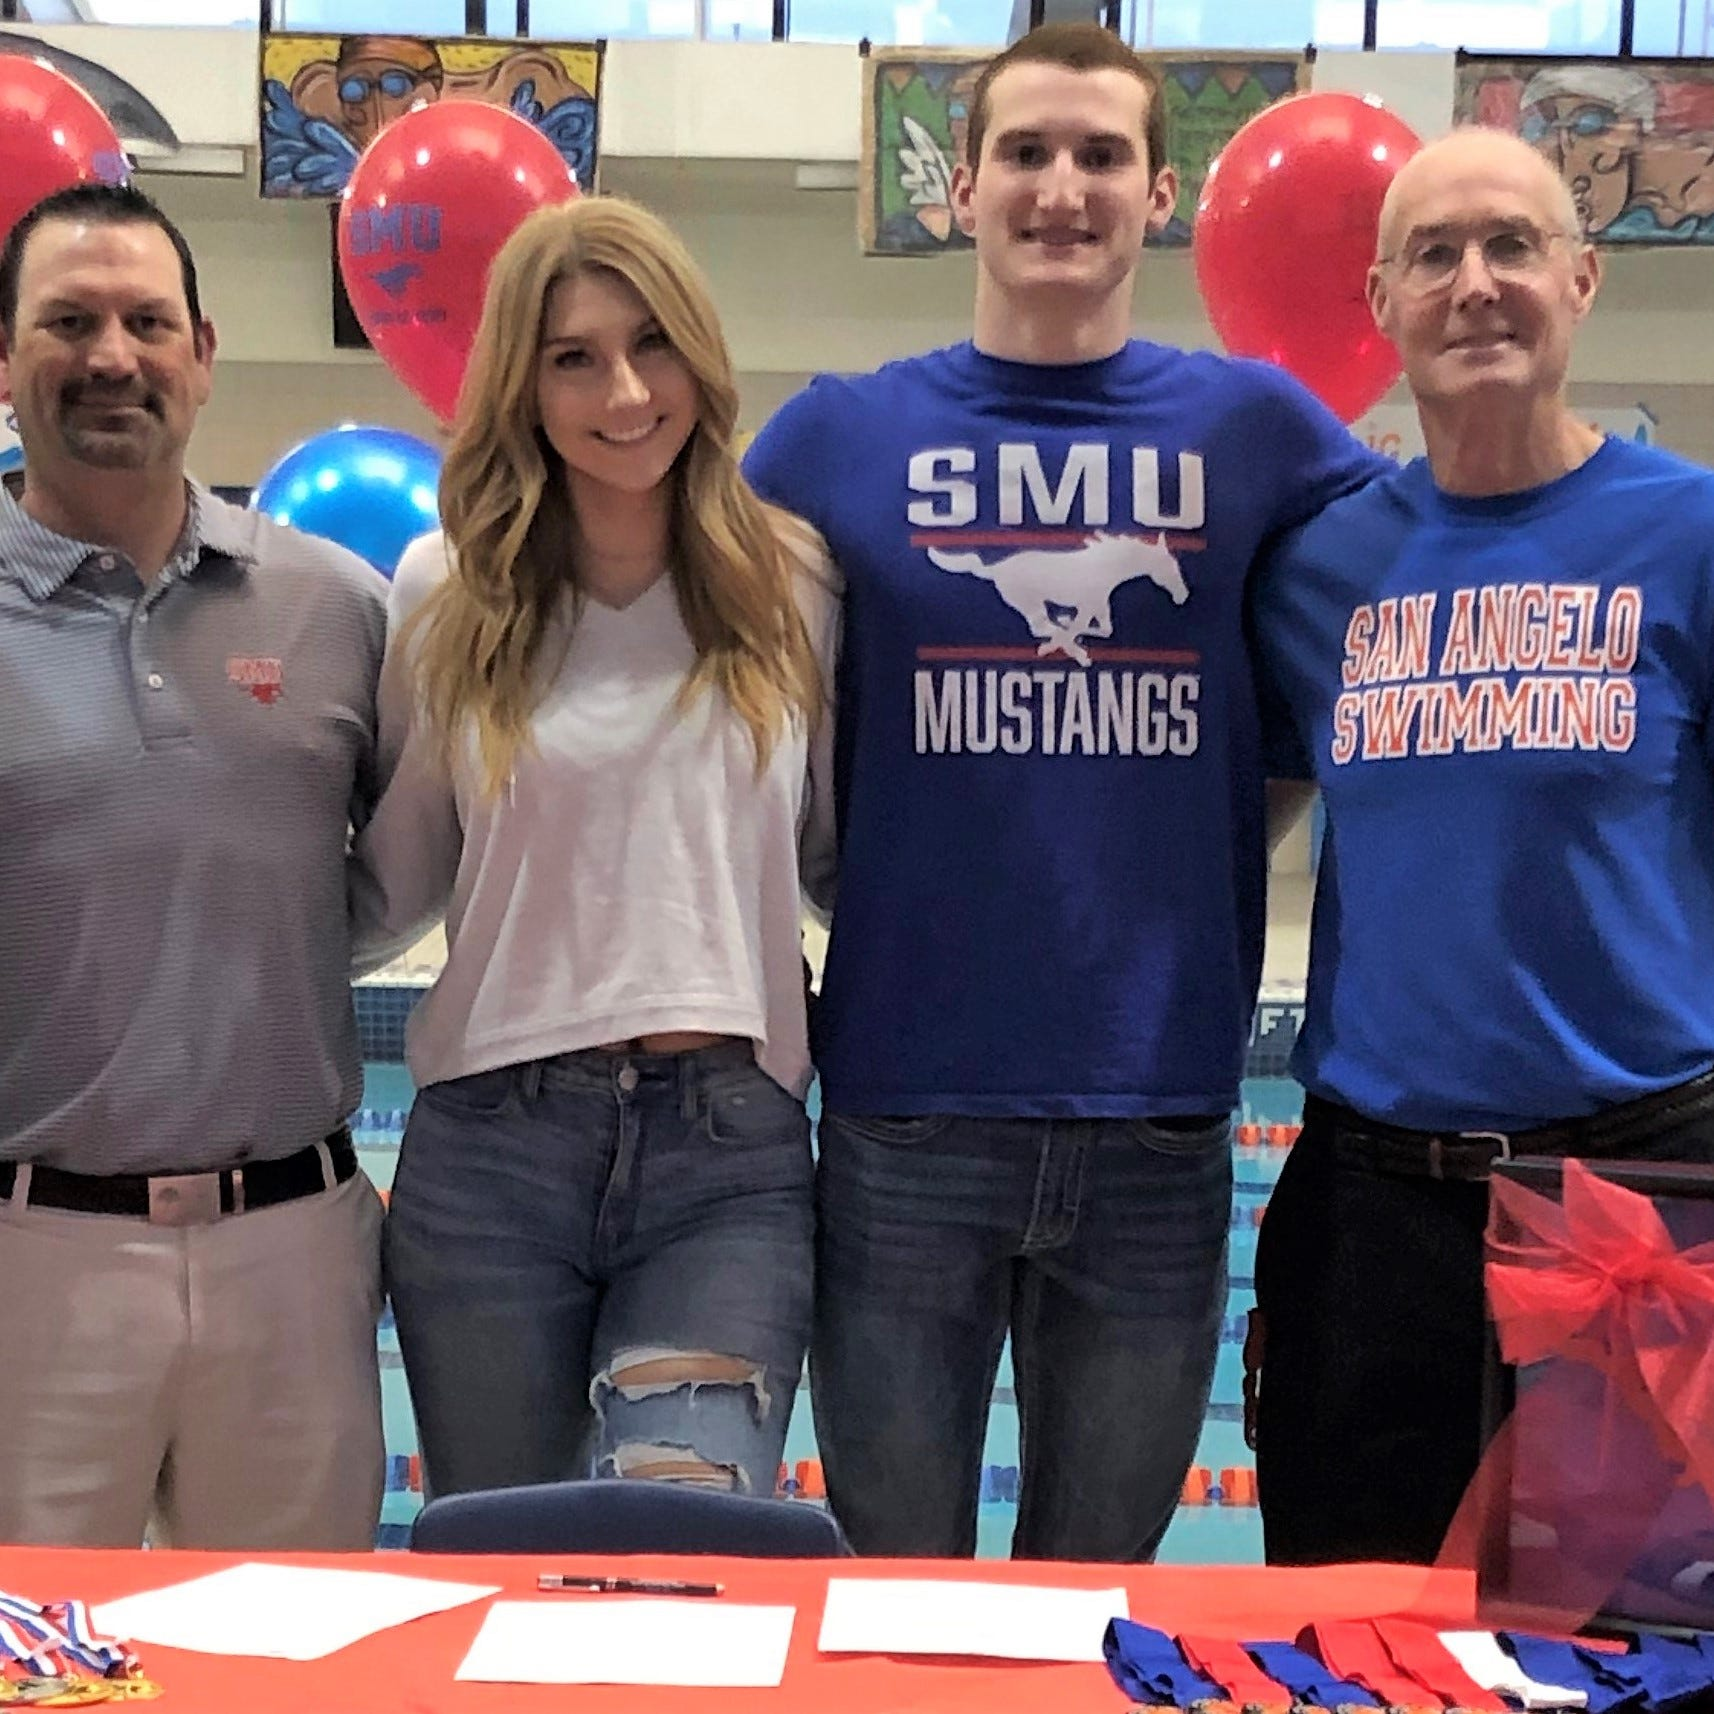 San Angelo Central swimmer Riley Hill ready to make splash at SMU